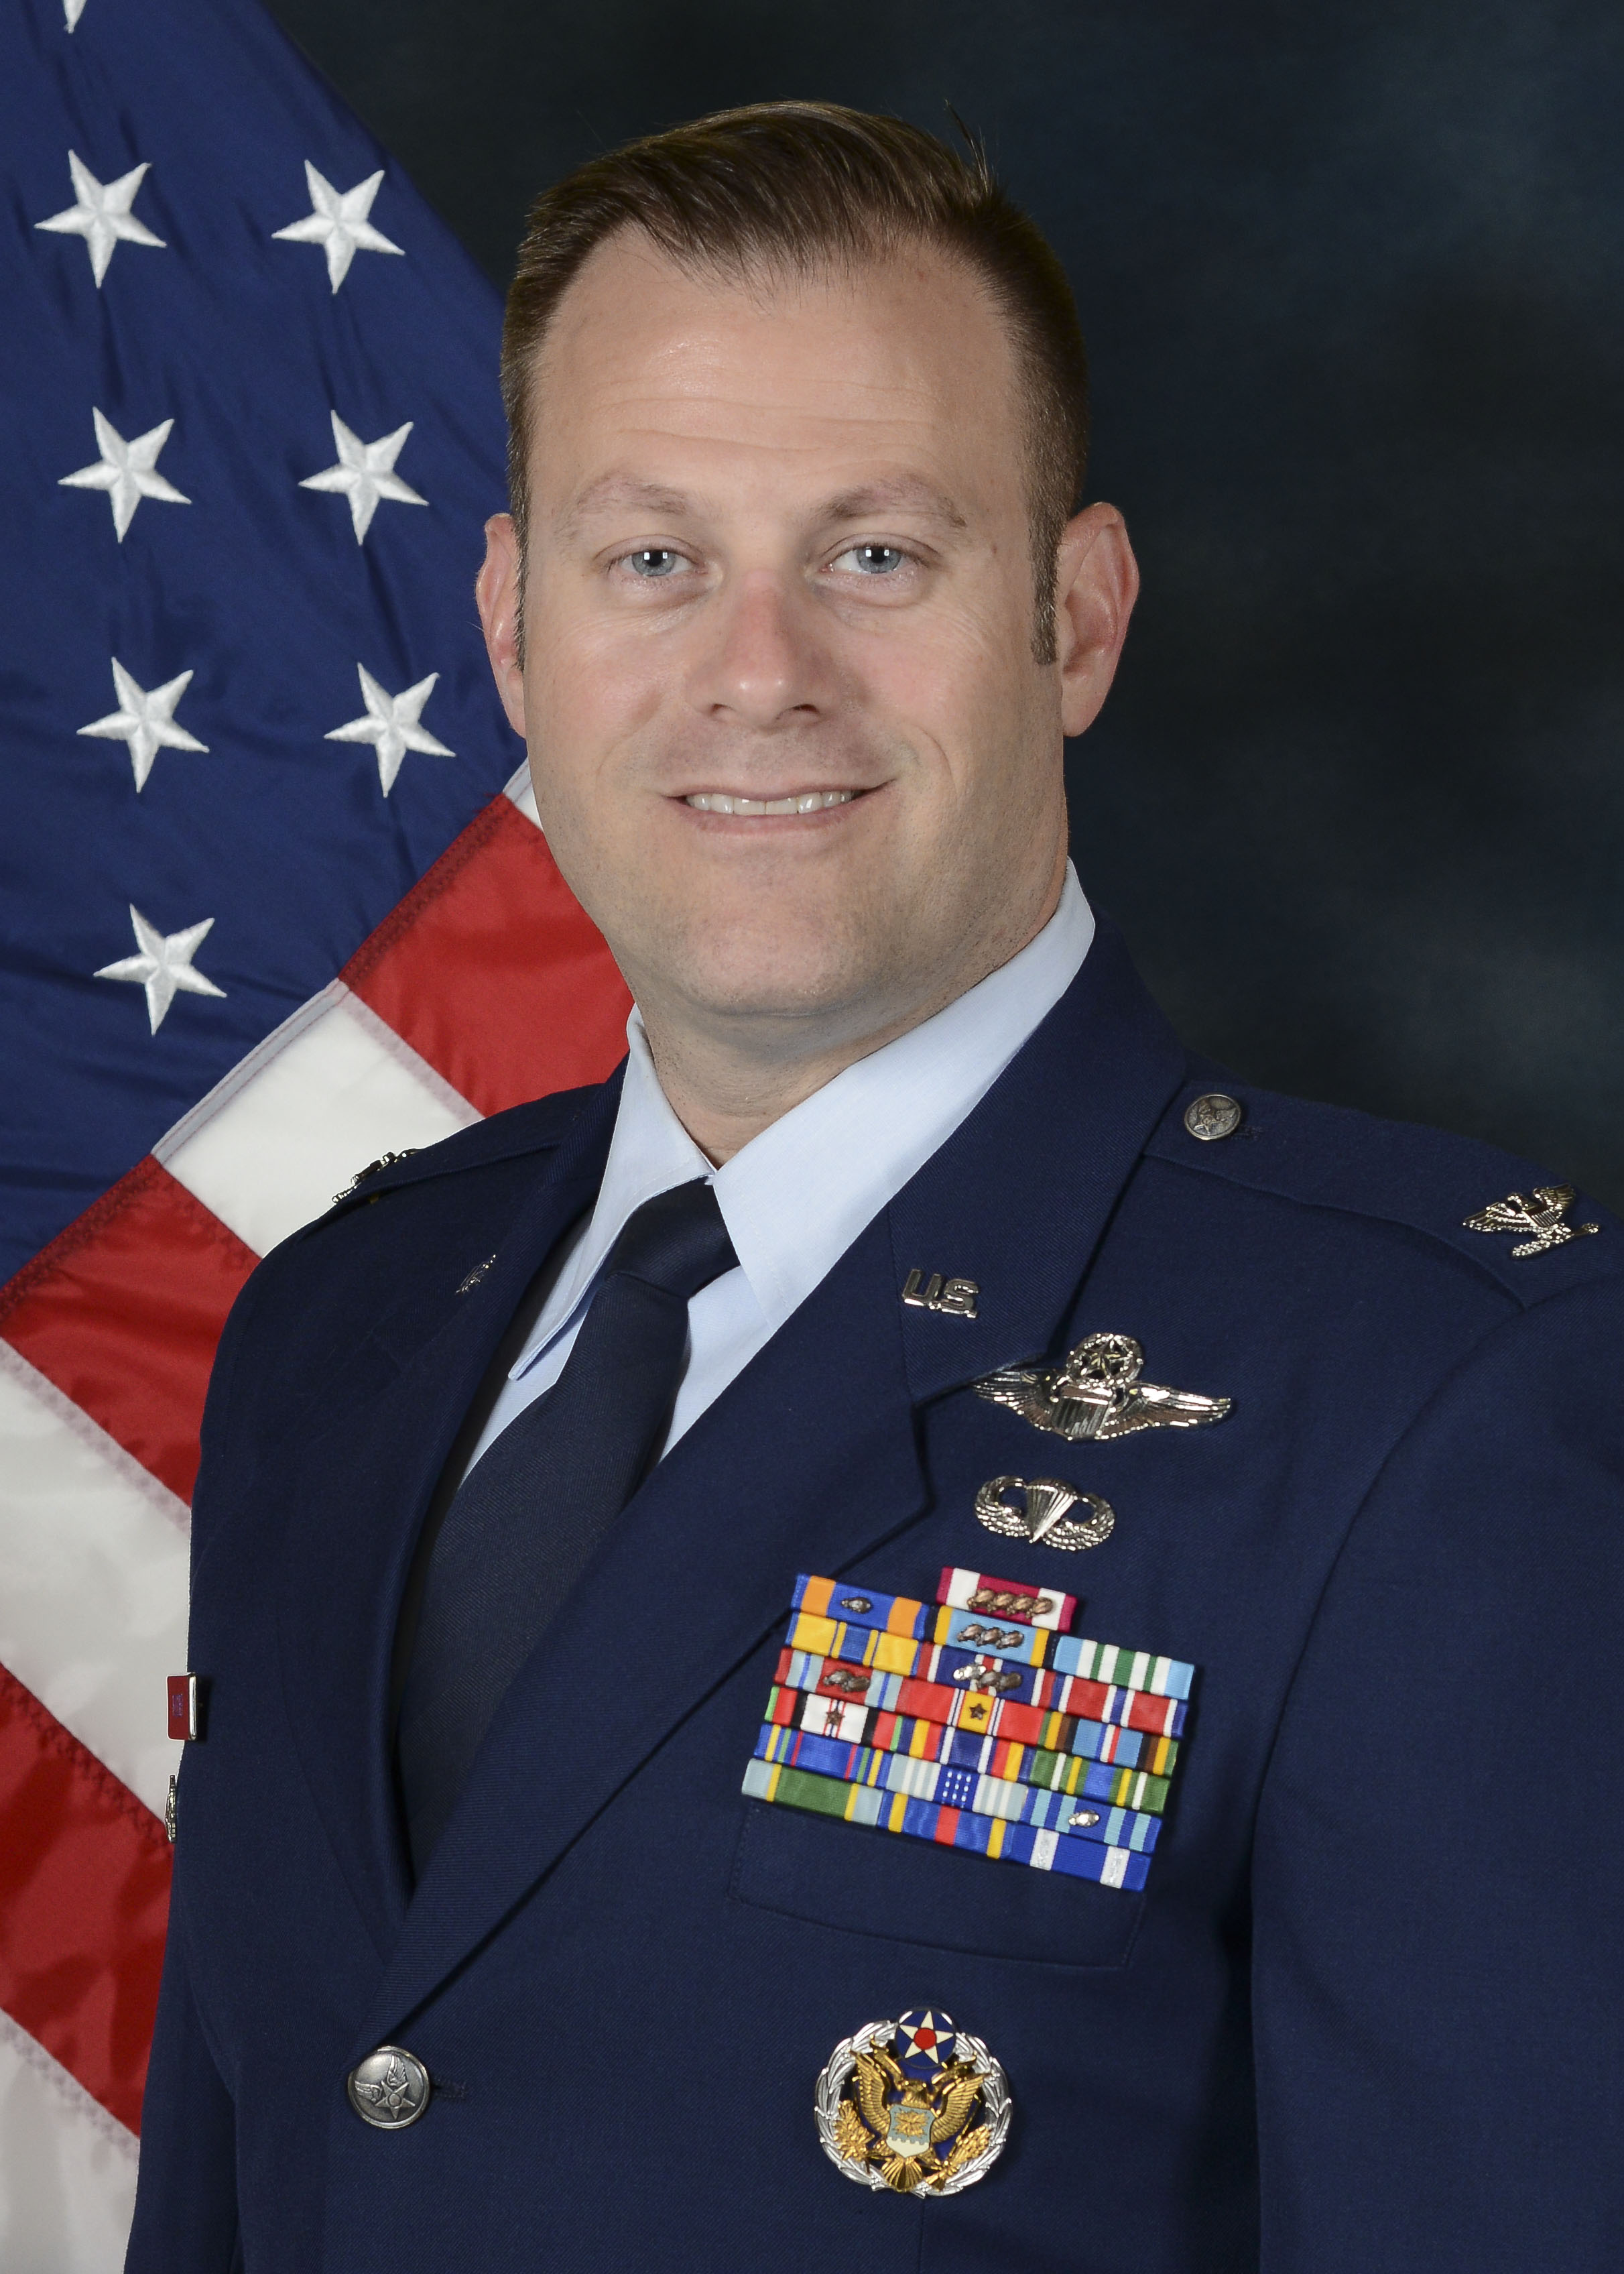 Col. Sean Routier